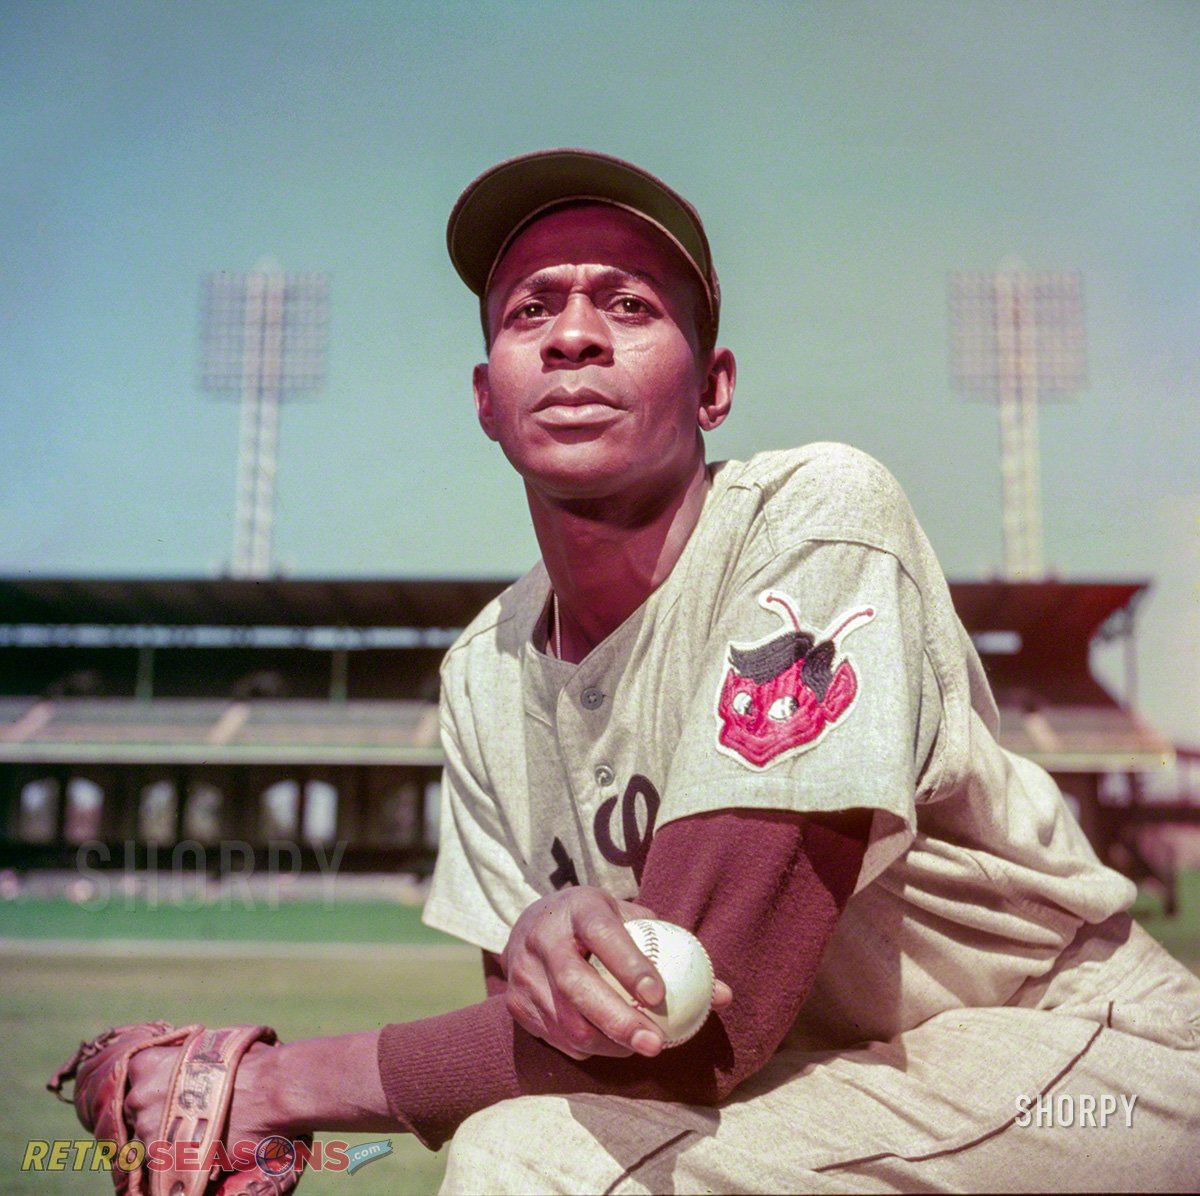 Satchel Paige The St. Louis Browns pitcher in September 1952